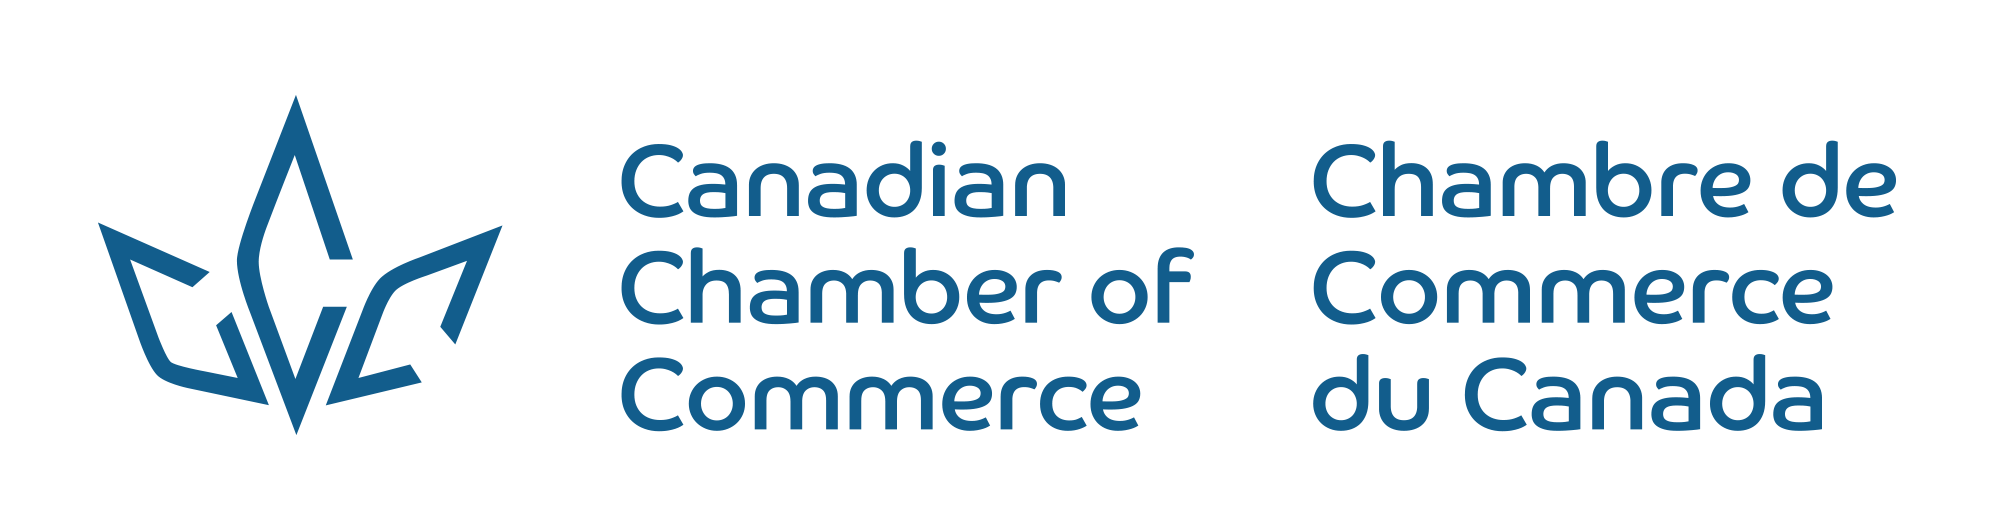 canadian chamber 2020